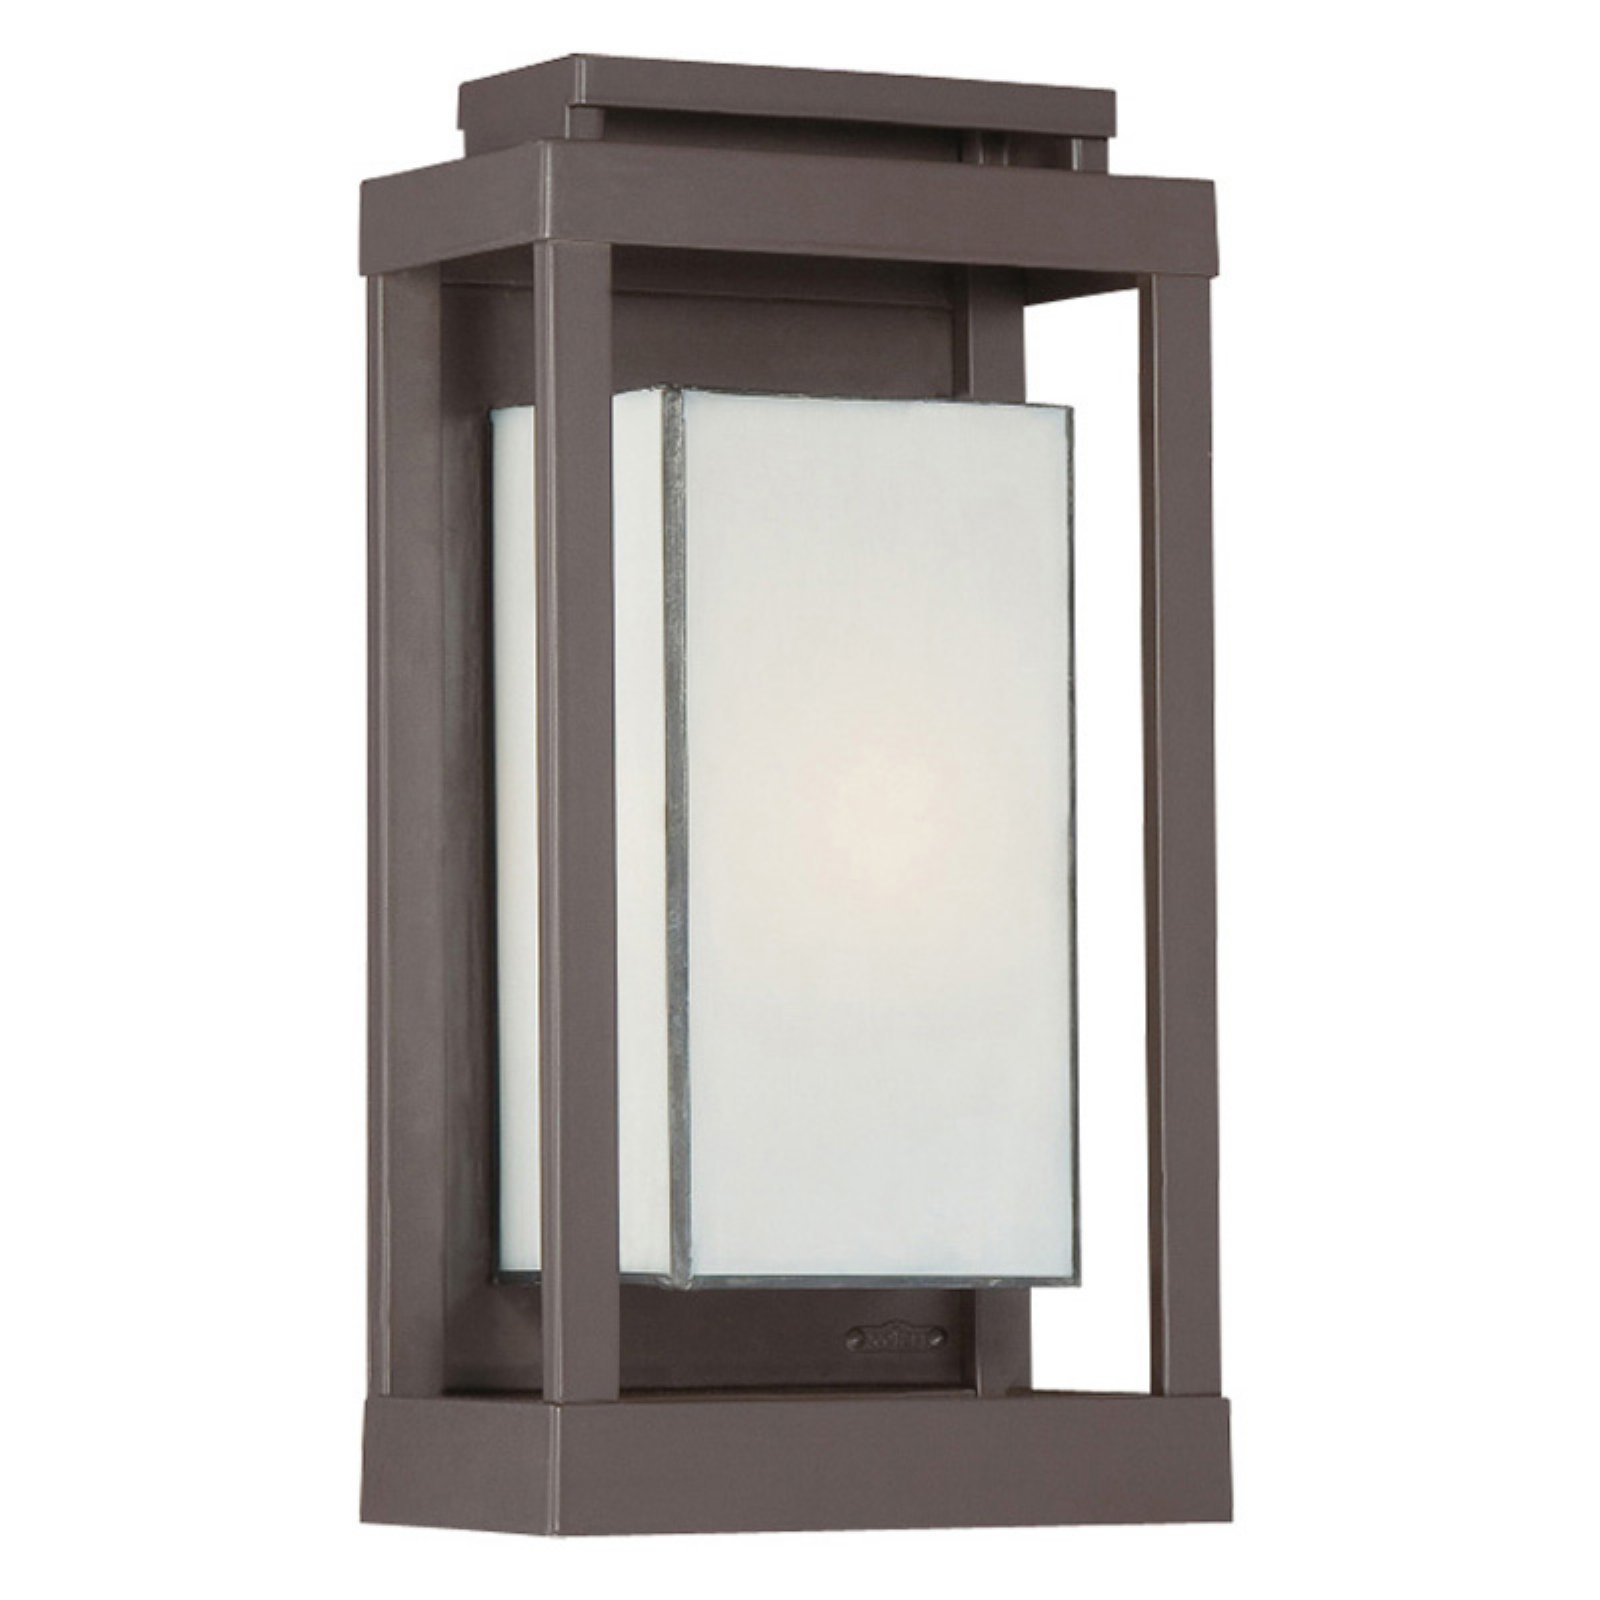 Quoizel Powell PWL83 Outdoor Wall Lantern